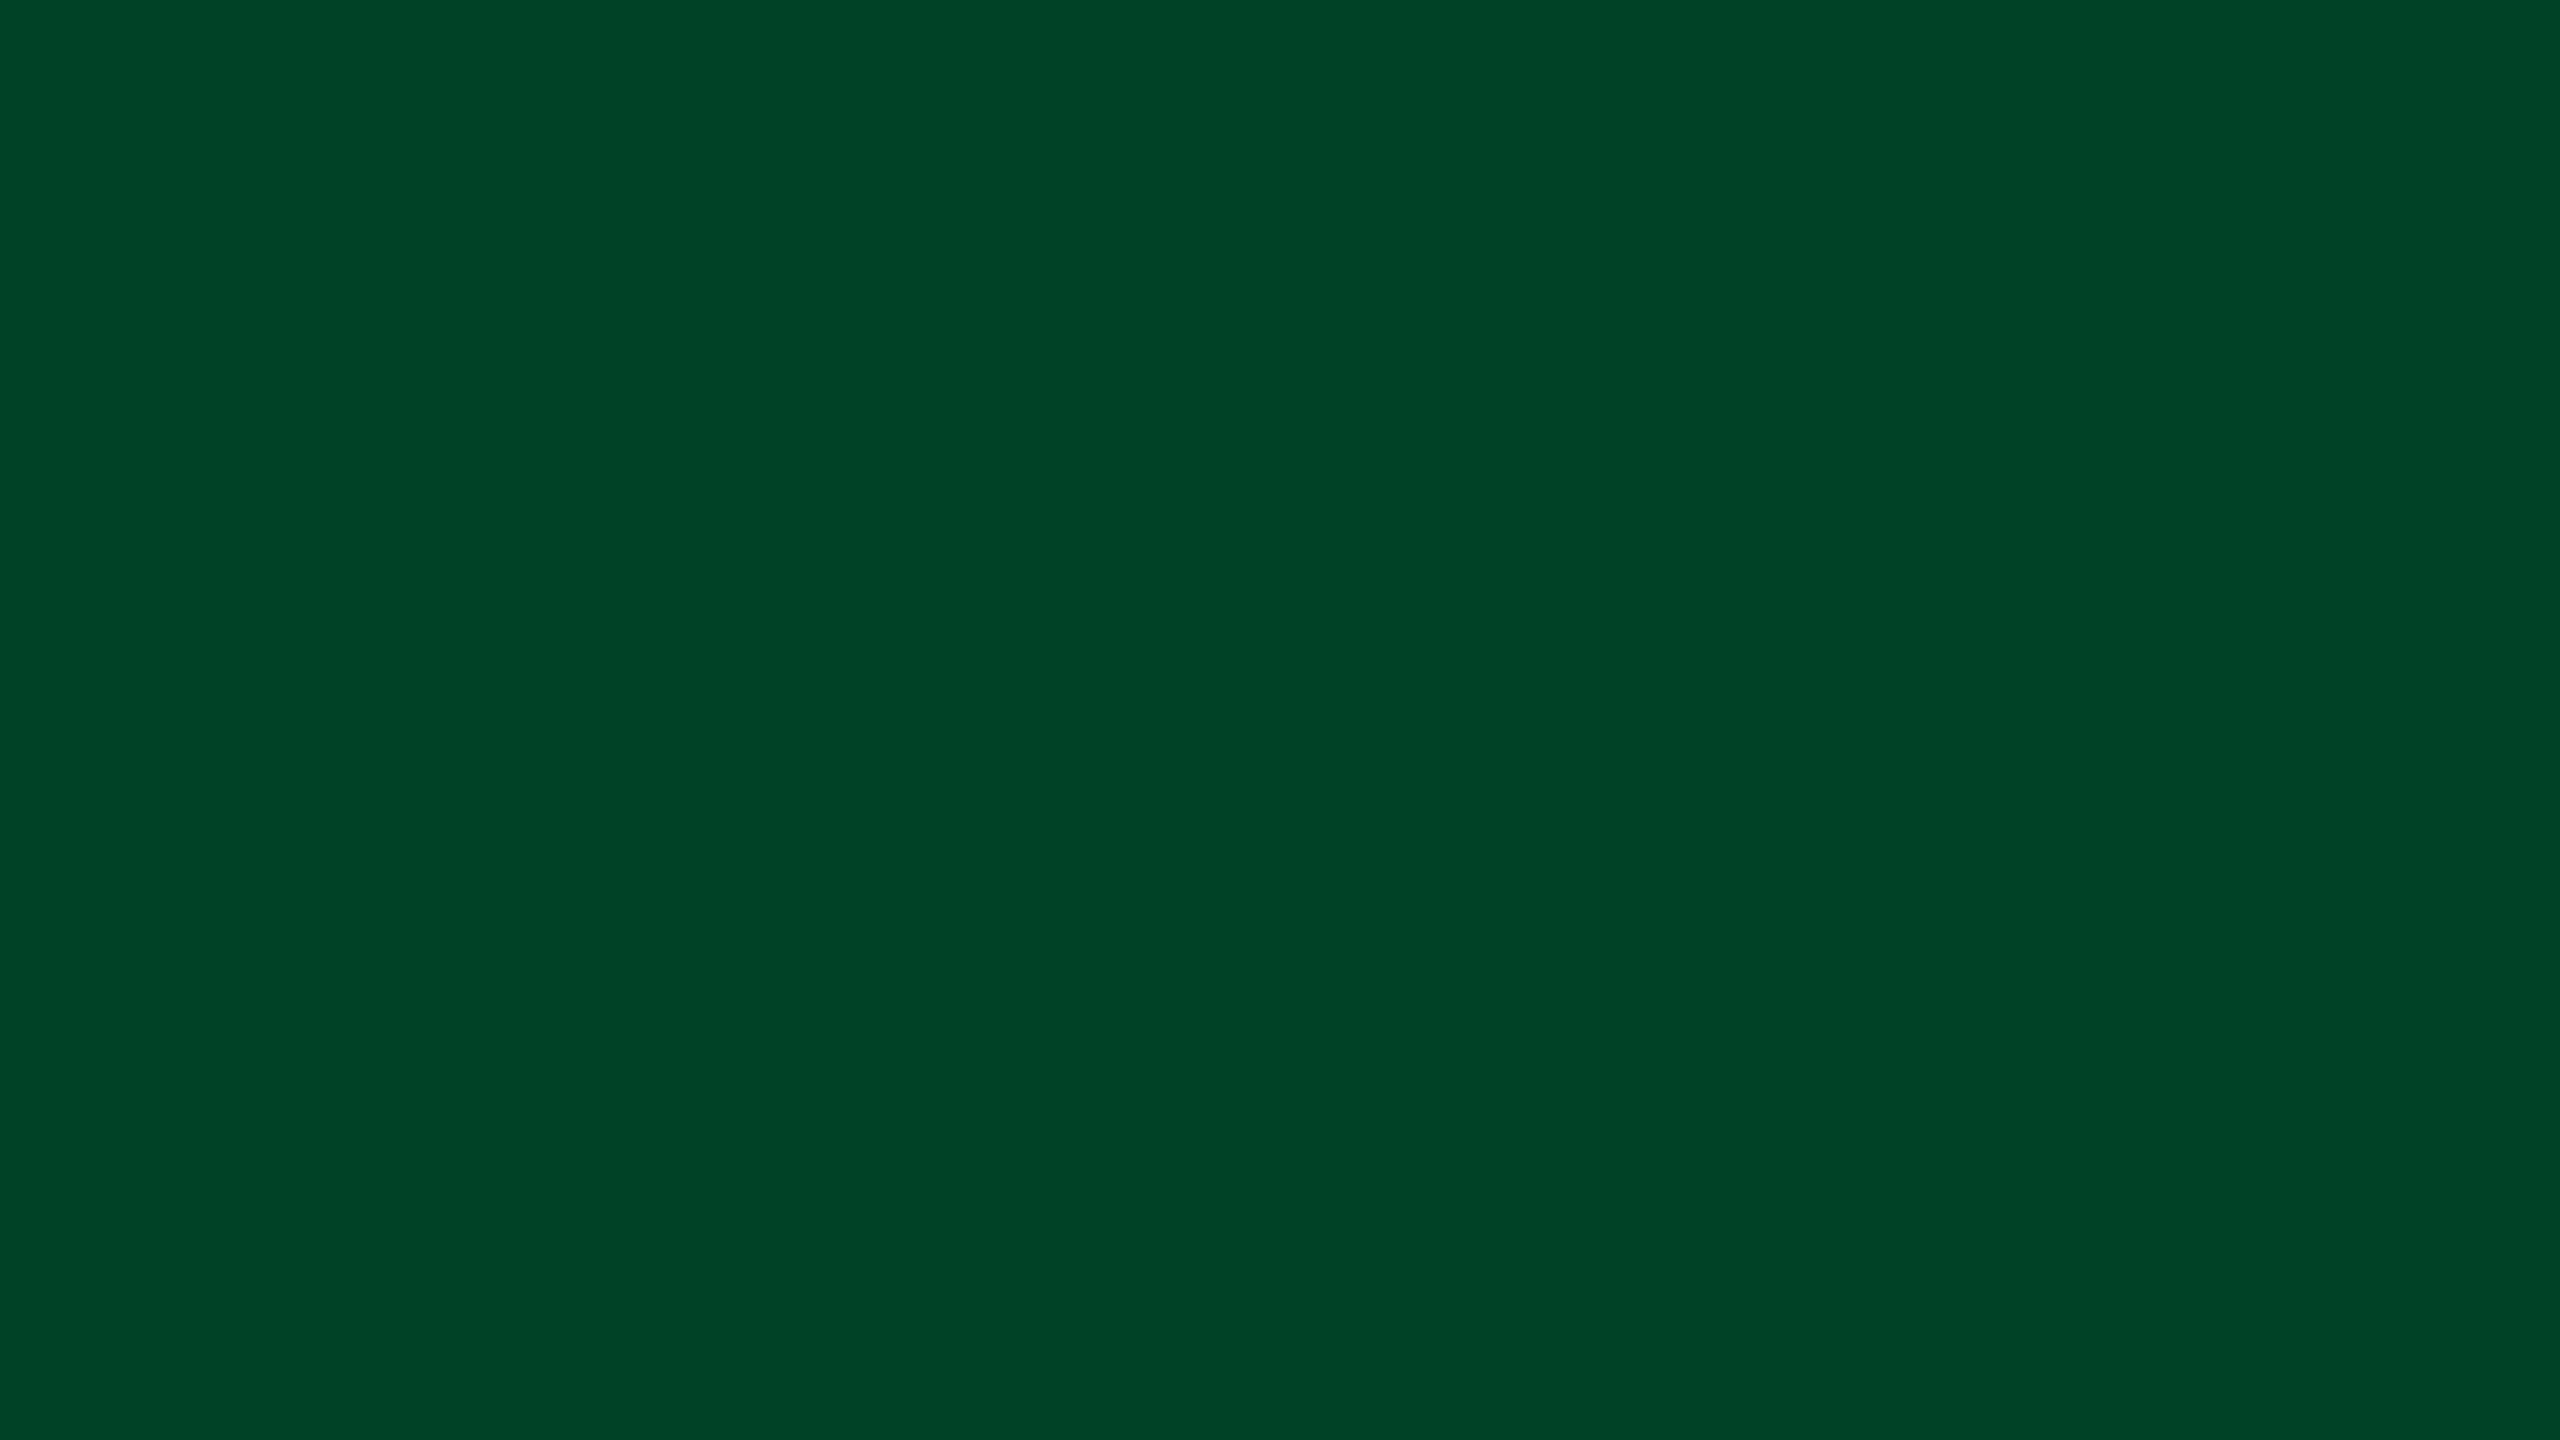 Black And Green Wallpaper 2560x1440 British Racing Green Solid Color Background